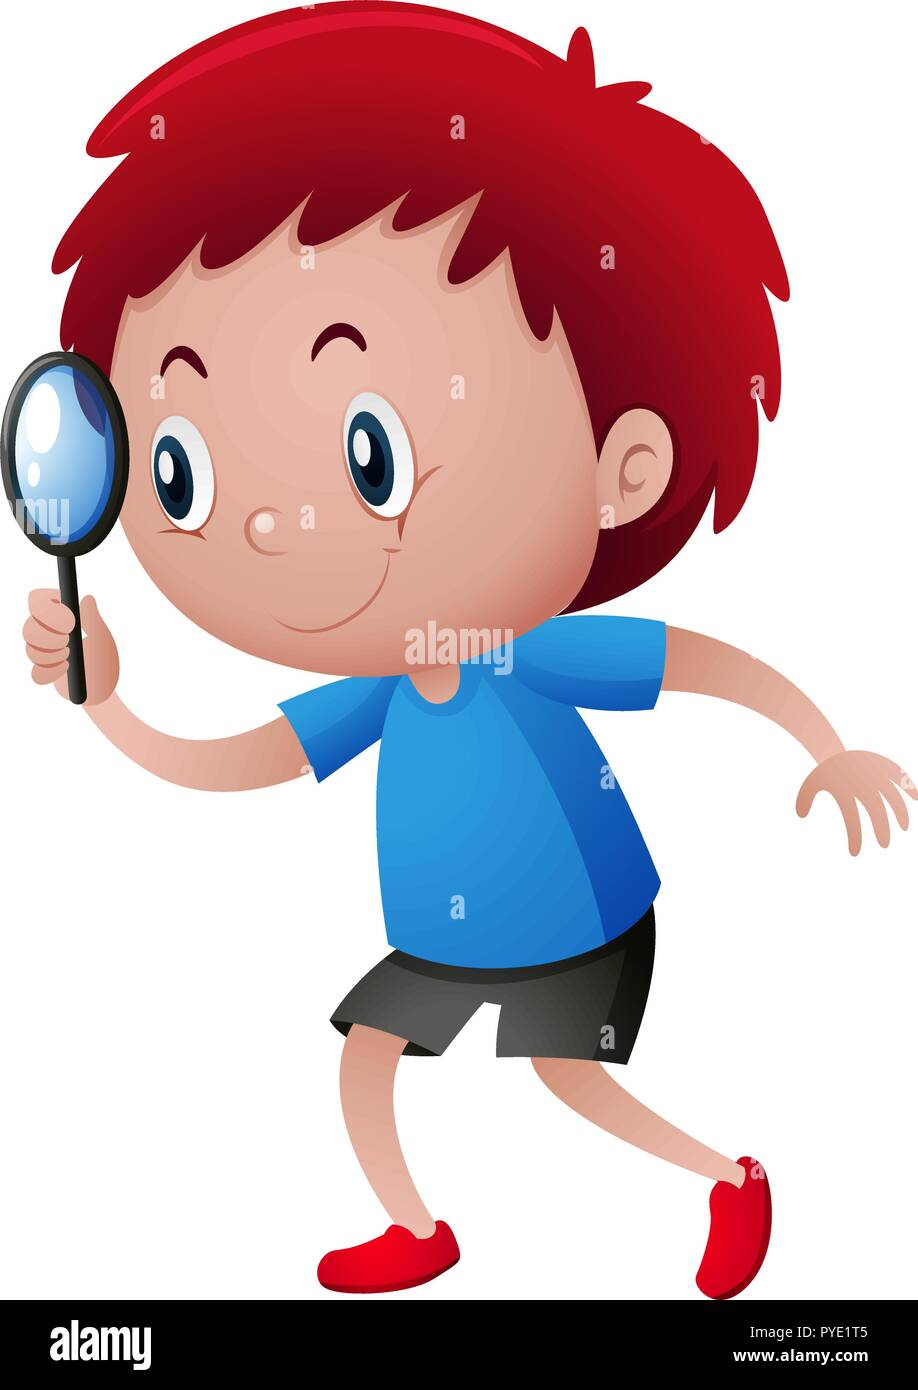 Boy looking through magnifying glass illustration - Stock Vector